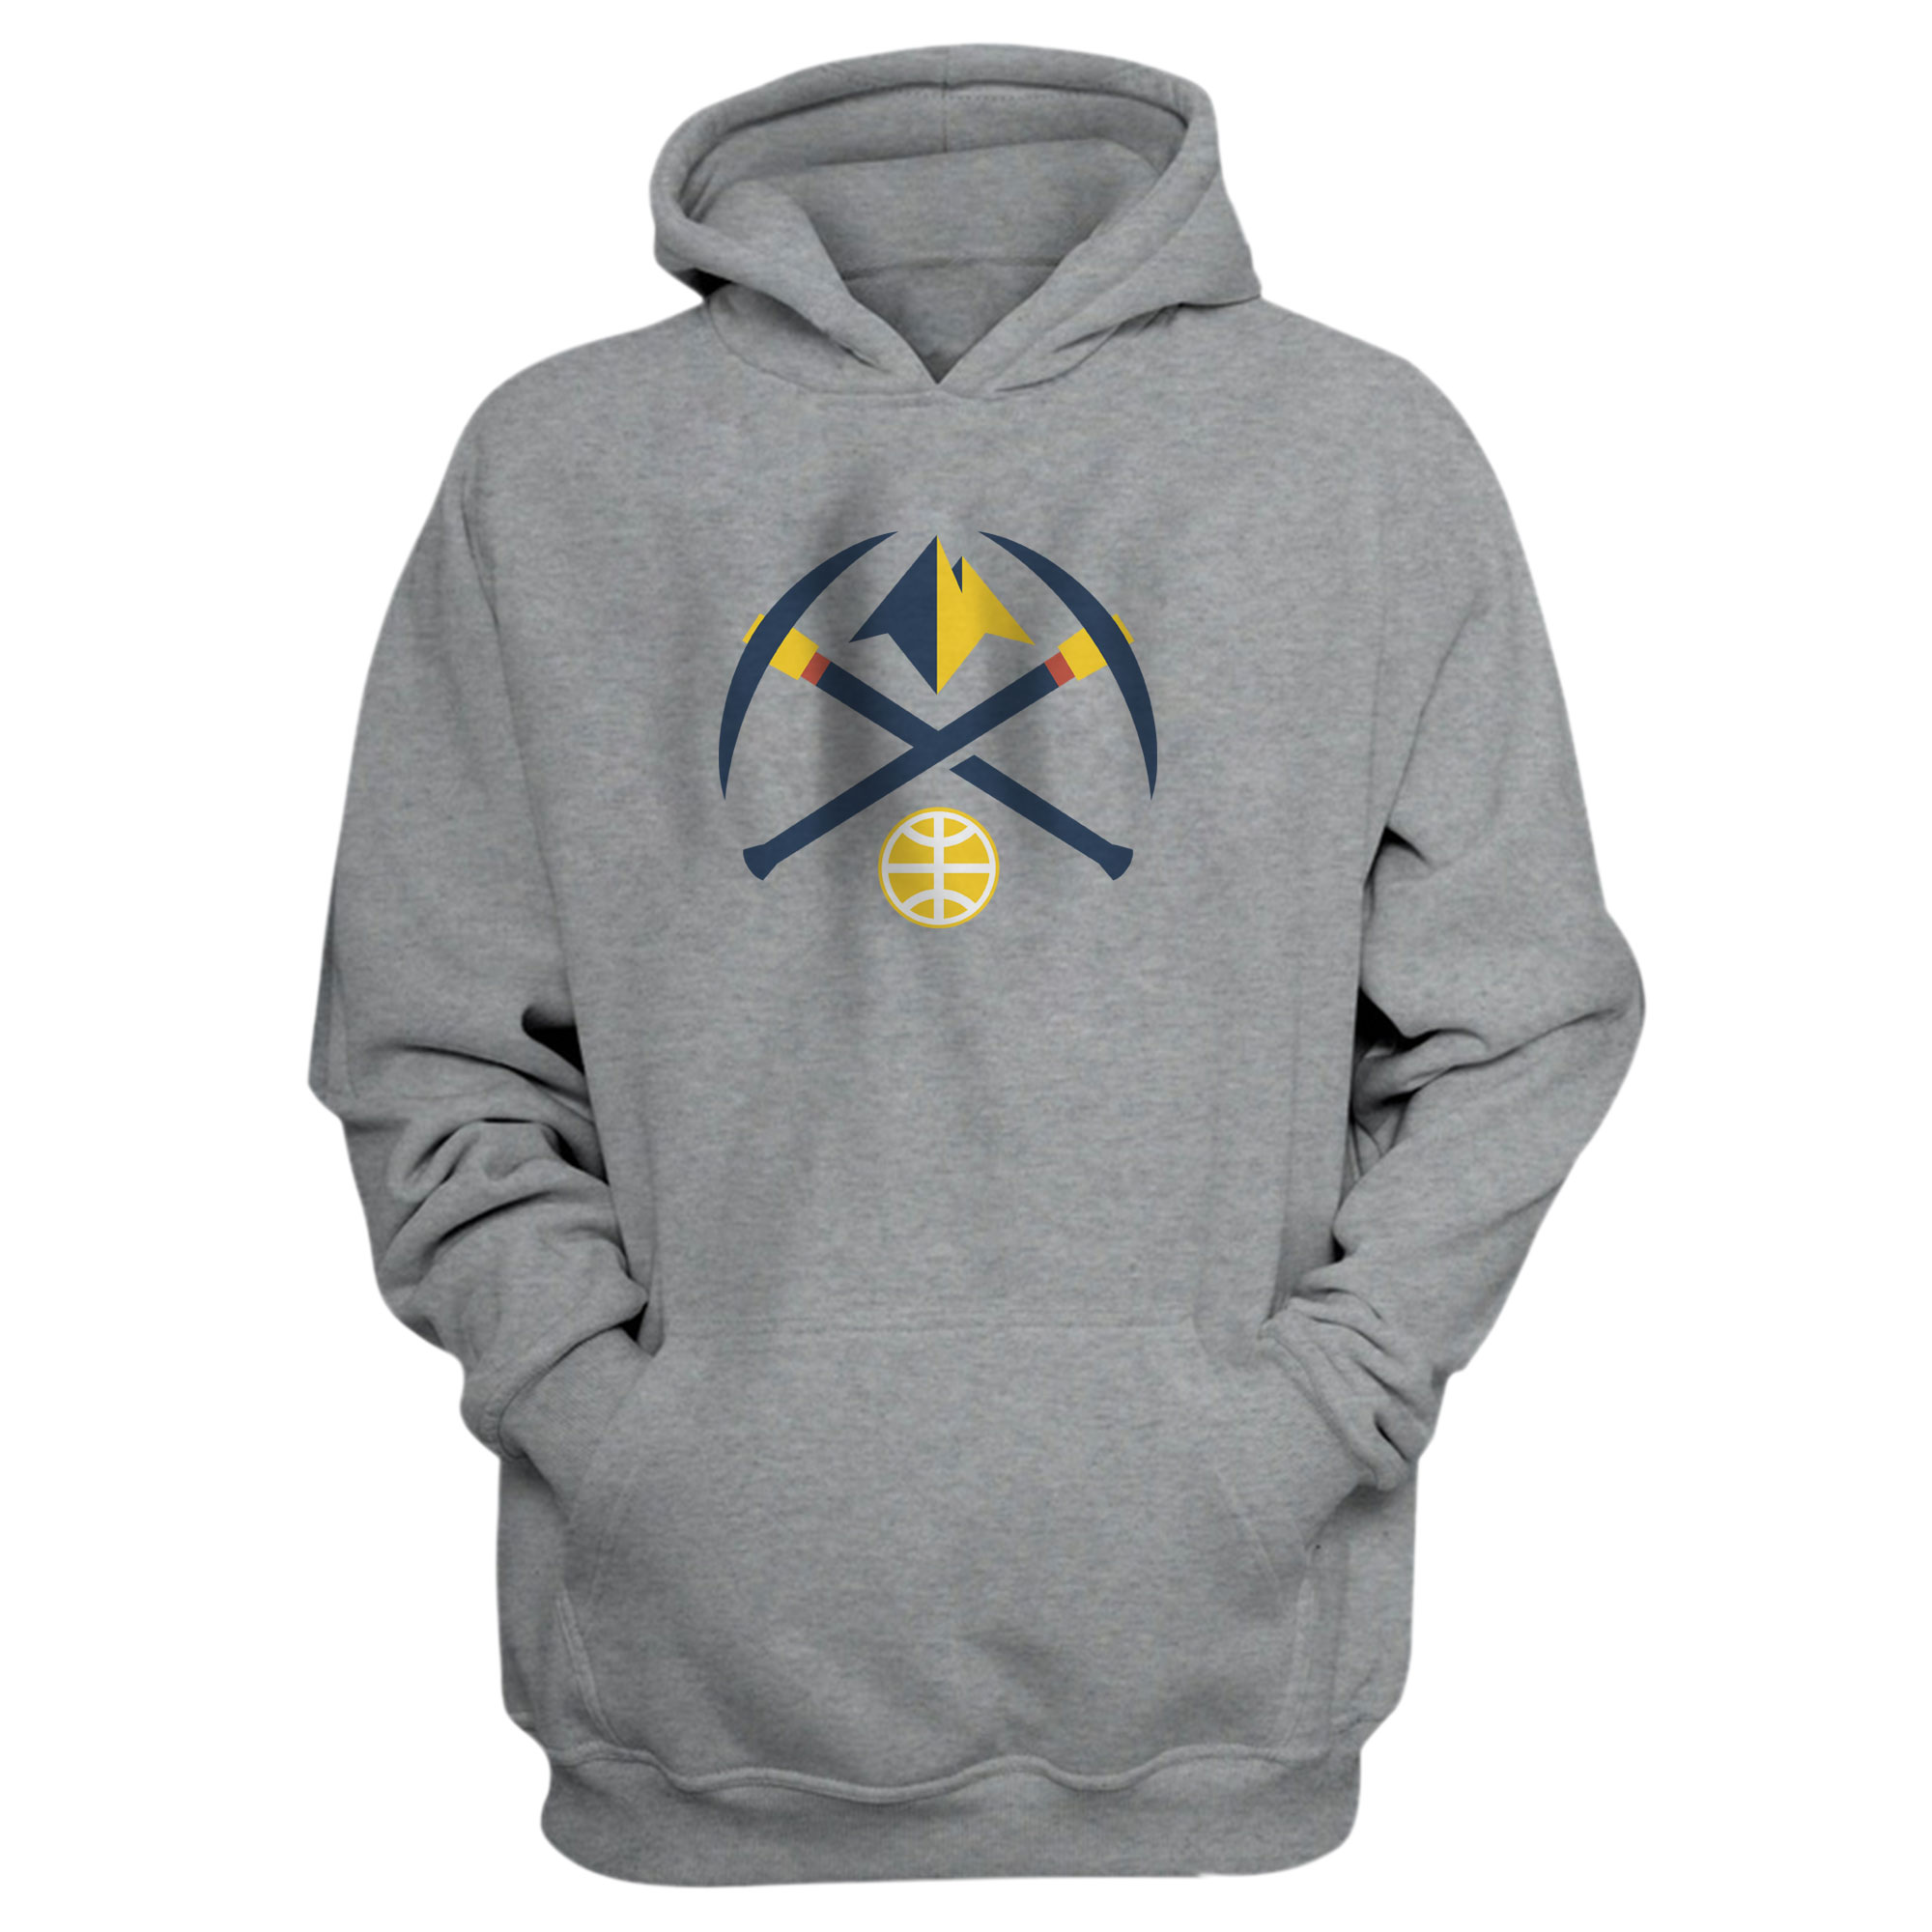 Denver Nuggets Hoodie (HD-YLW-402-NBA-DEN-NUGGETS)